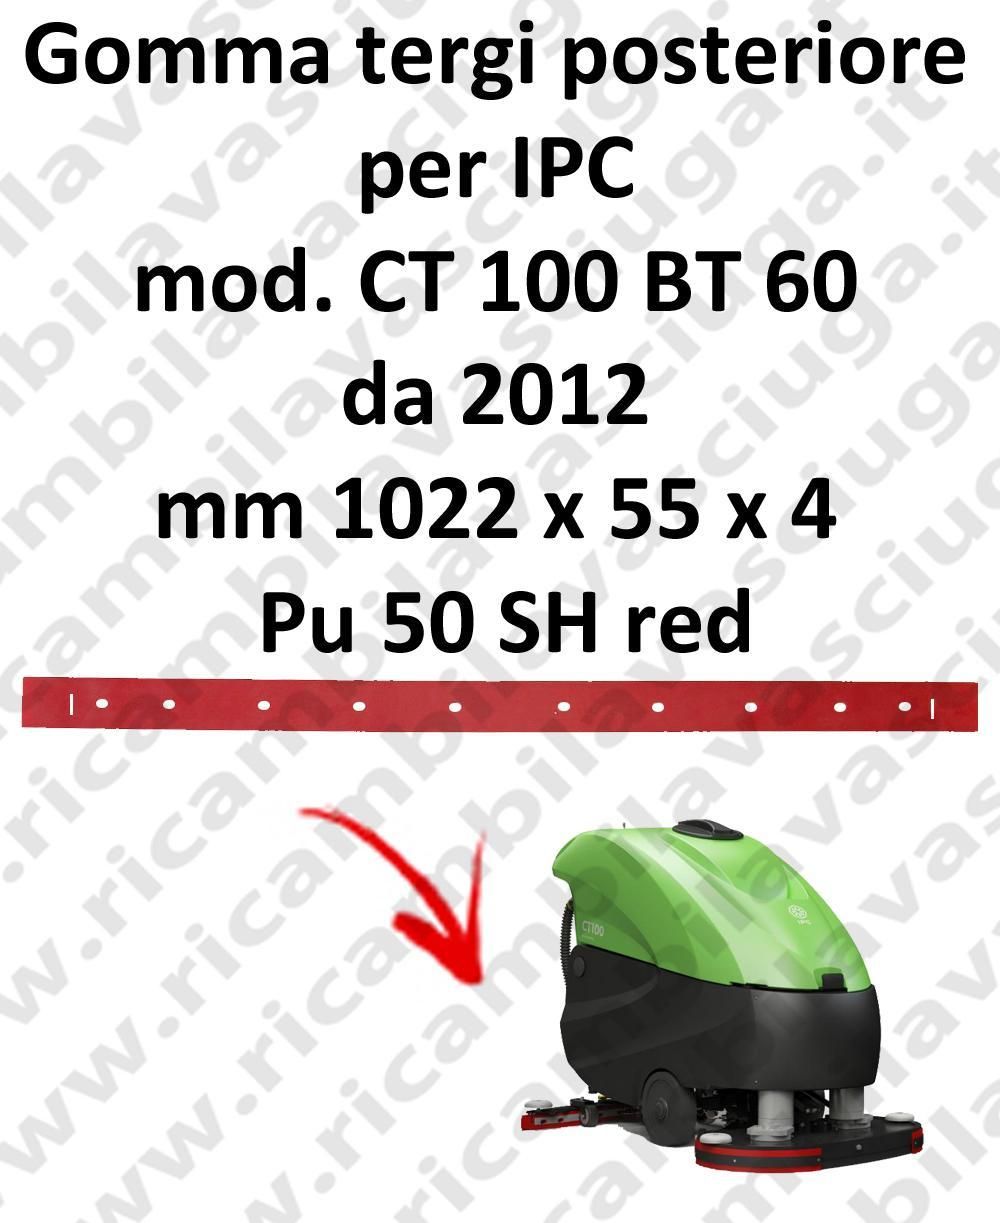 CT 100 BT 60 from 2012 squeegee rubber back for IPC